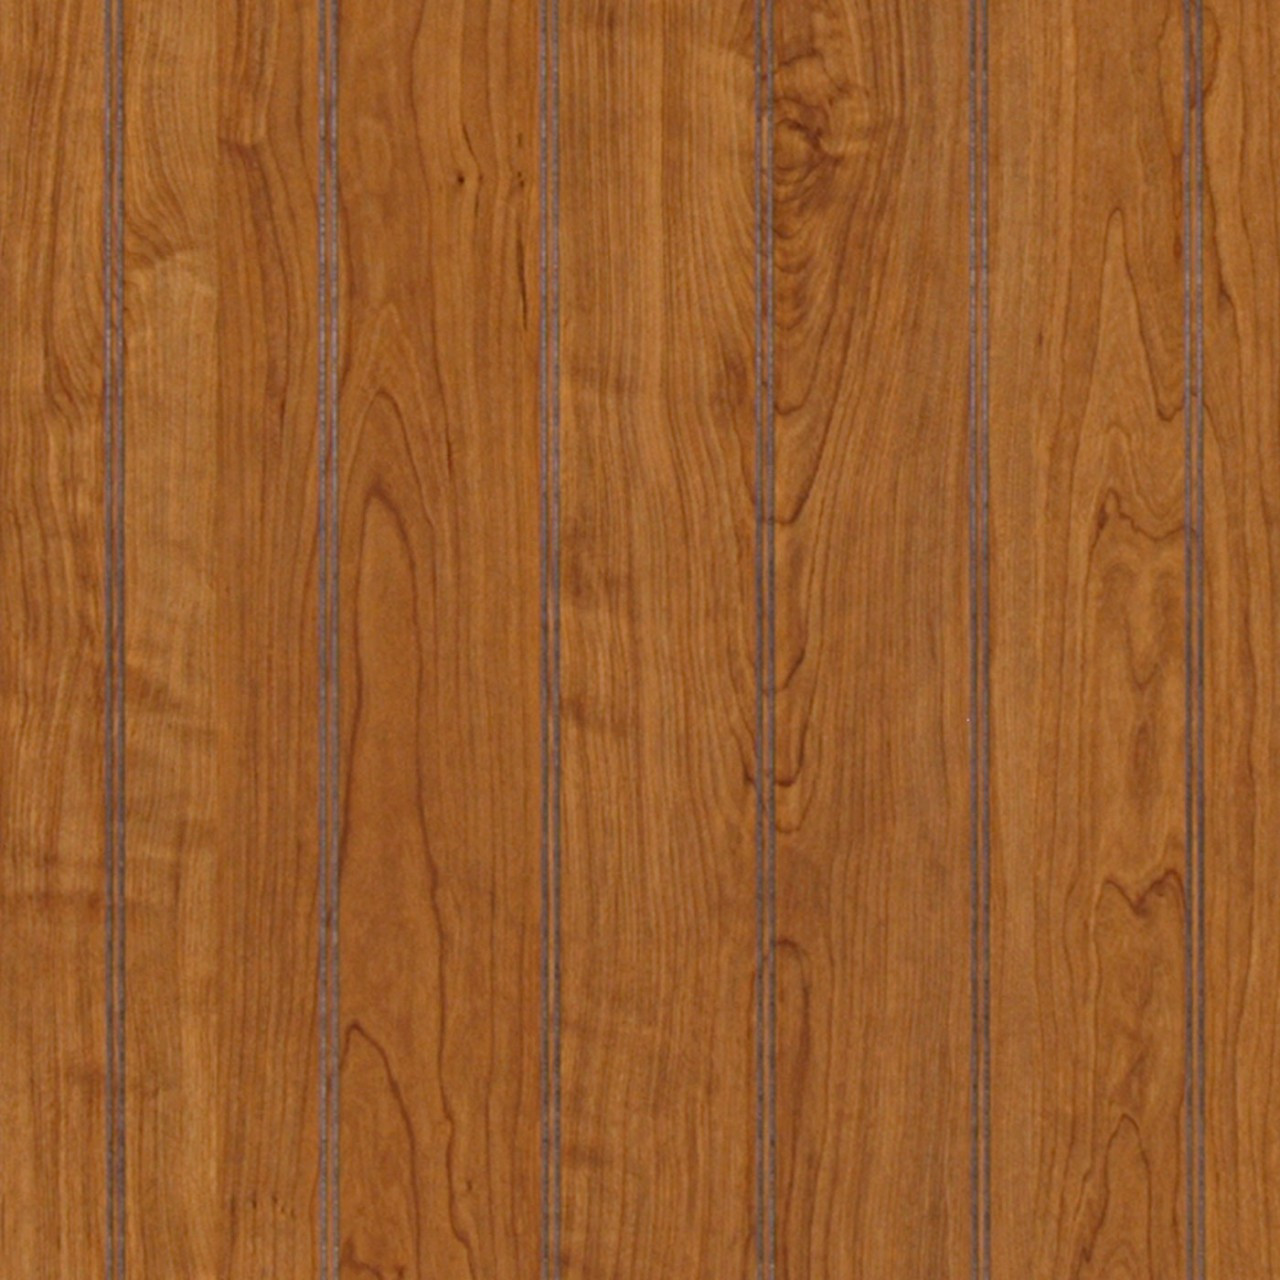 Beaded Wood Paneling 4 X 8 Wall Panels Plywood Ask Home Design